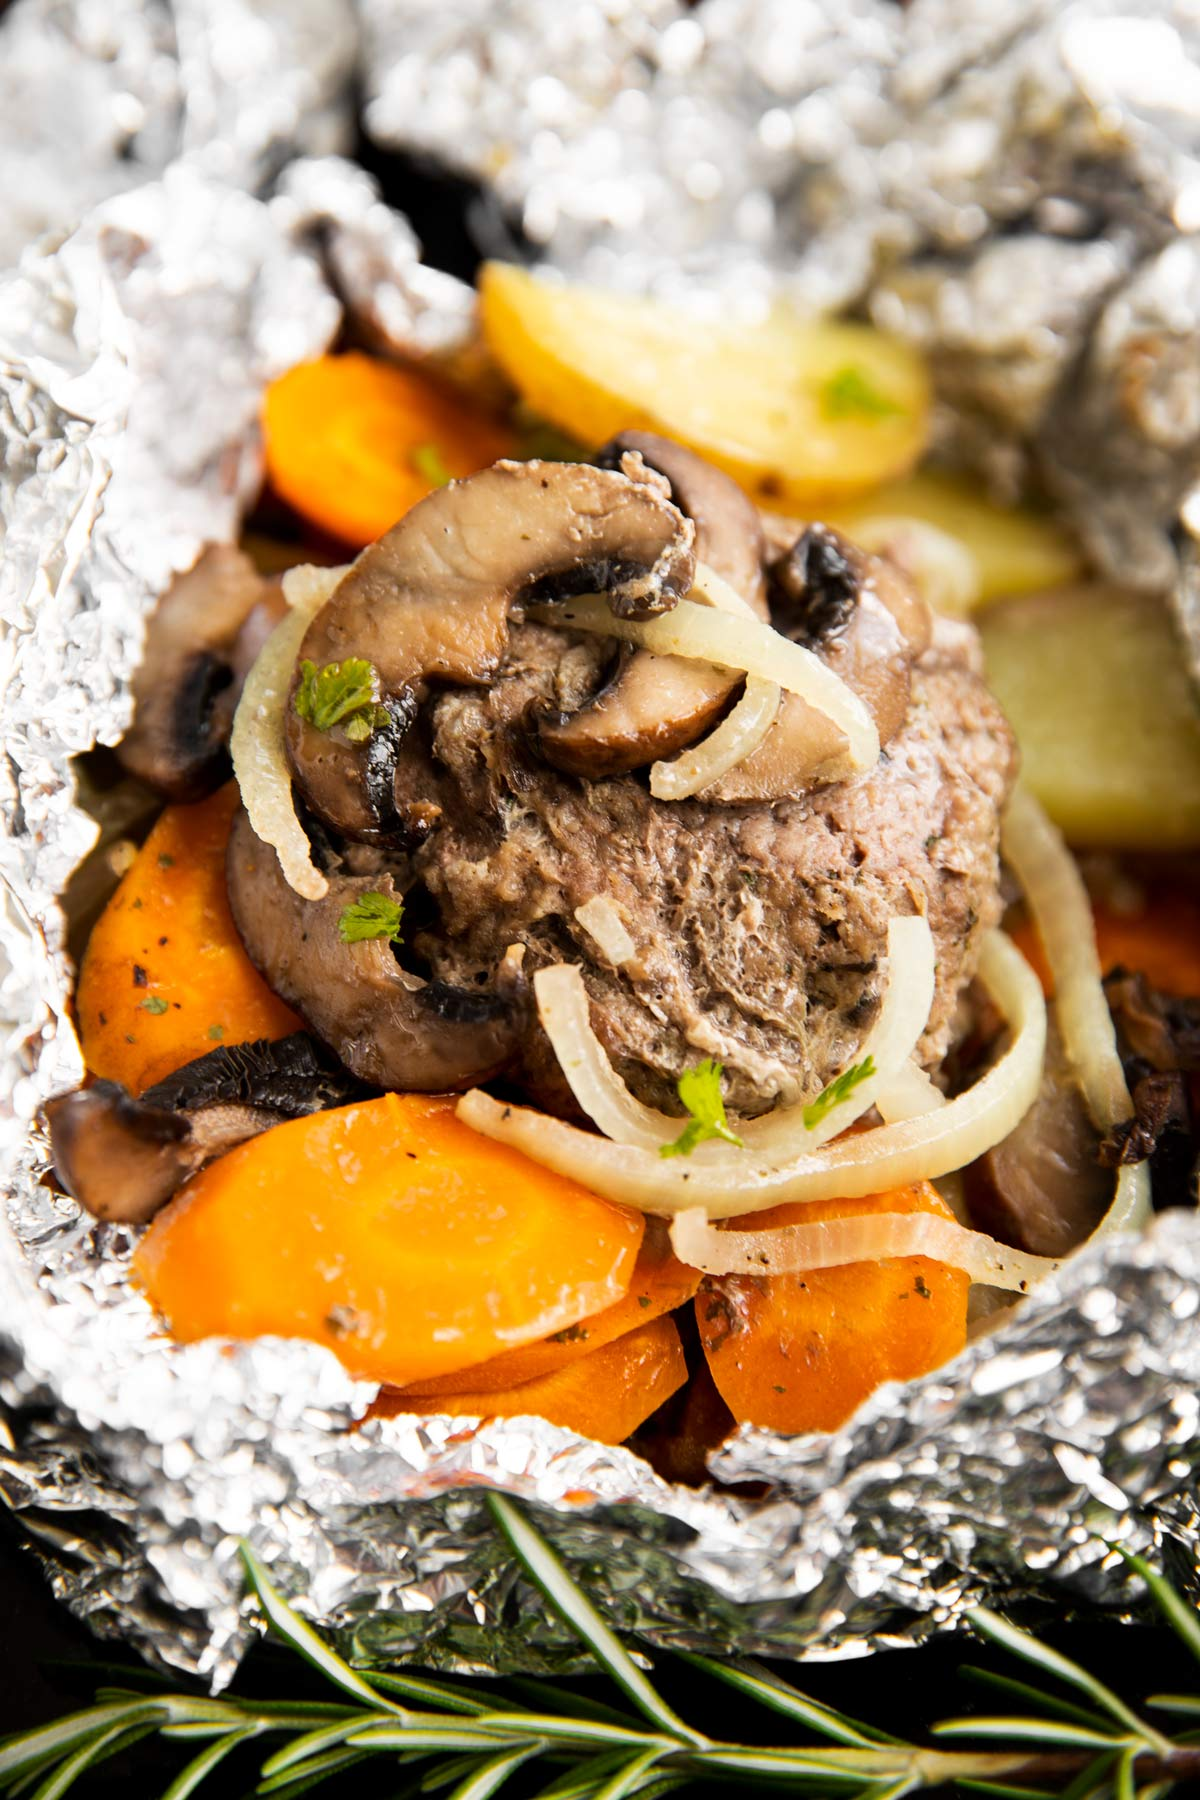 frontal close up of hamburger patty with carrots and potatoes in foil